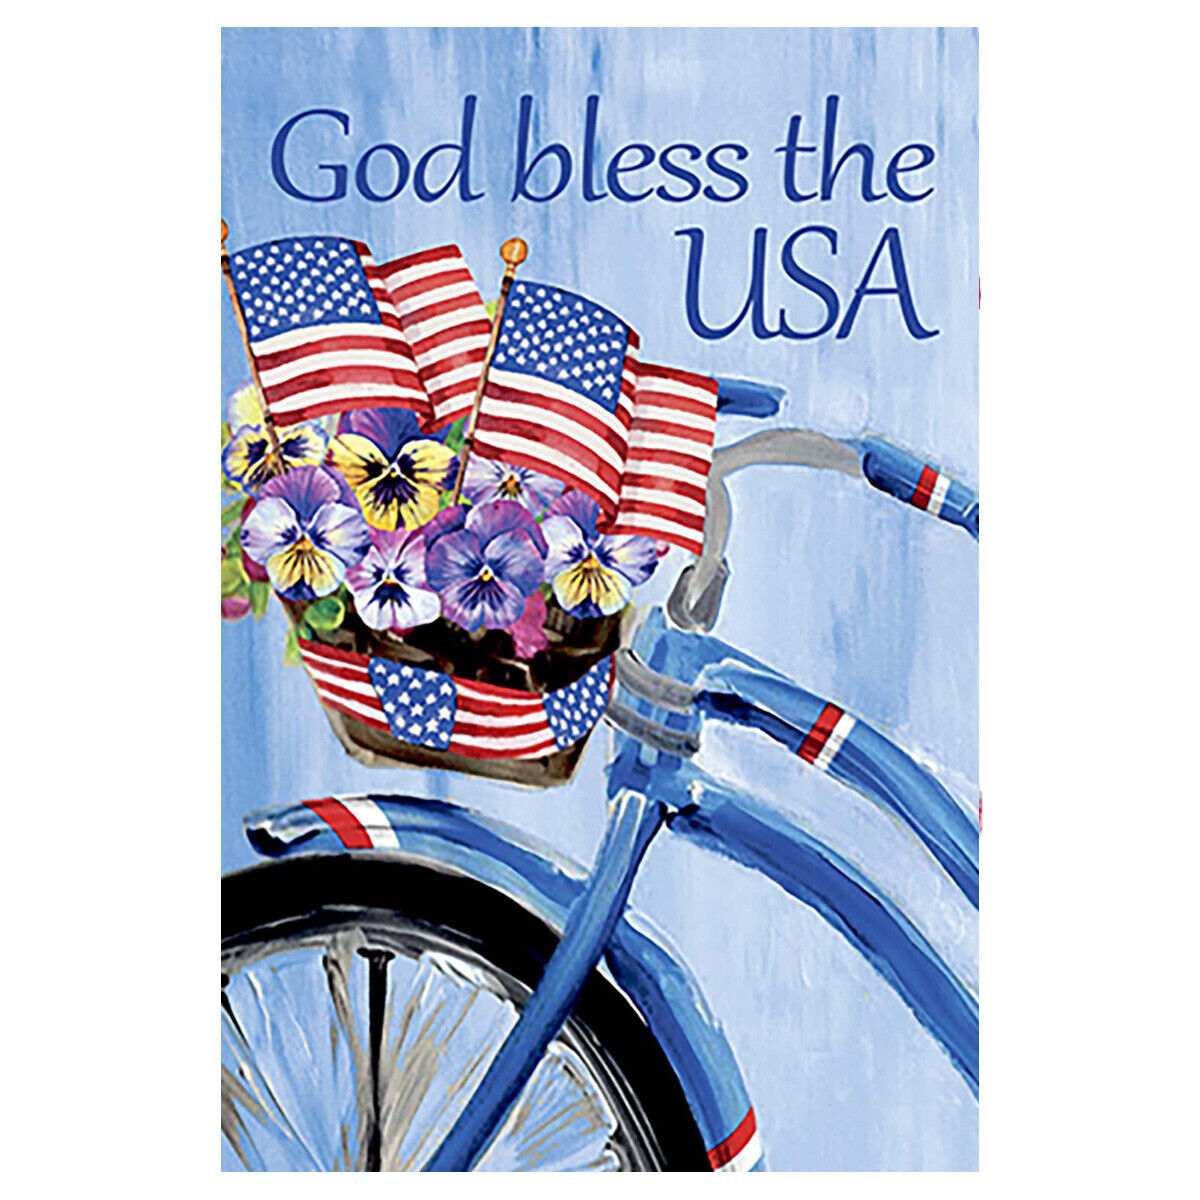 Morigins Patriotic Floral Bicycle Double Sided God Bless The